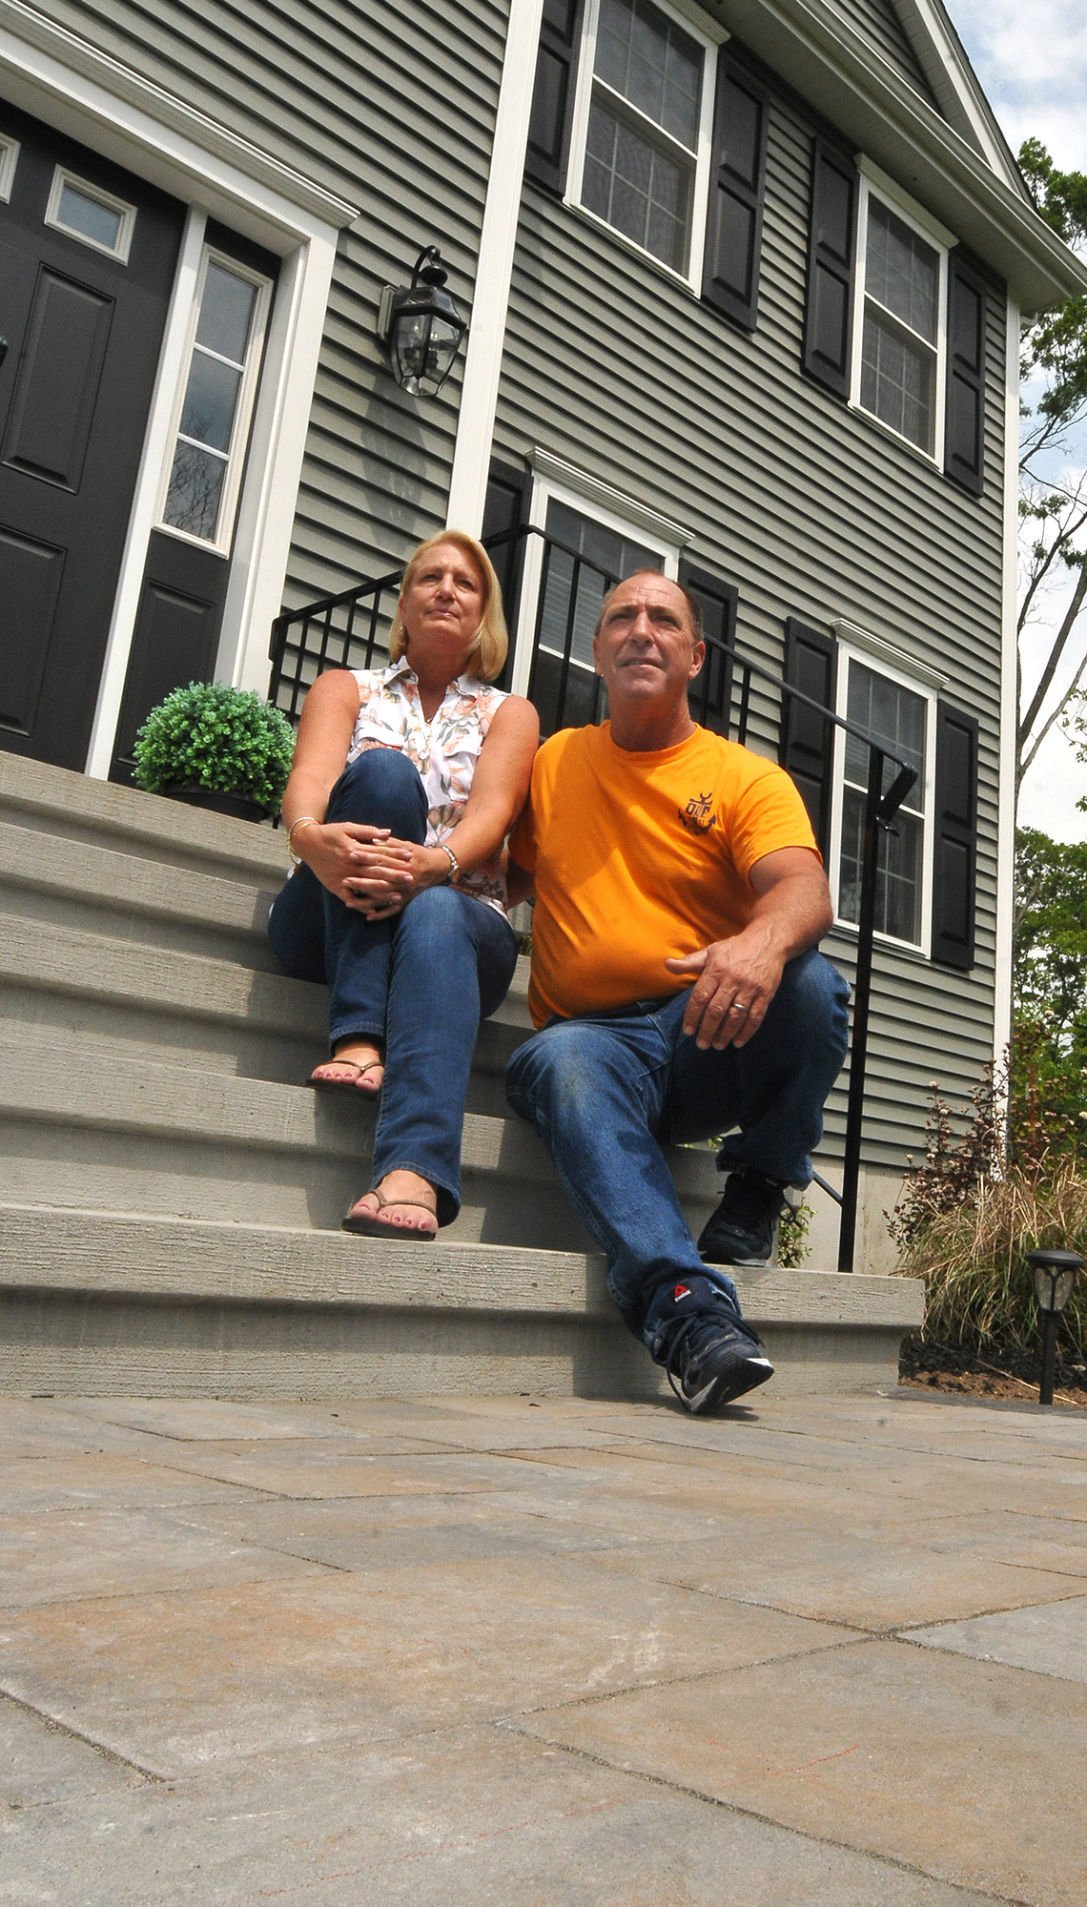 Housing market: Prices are up, but homes selling fast